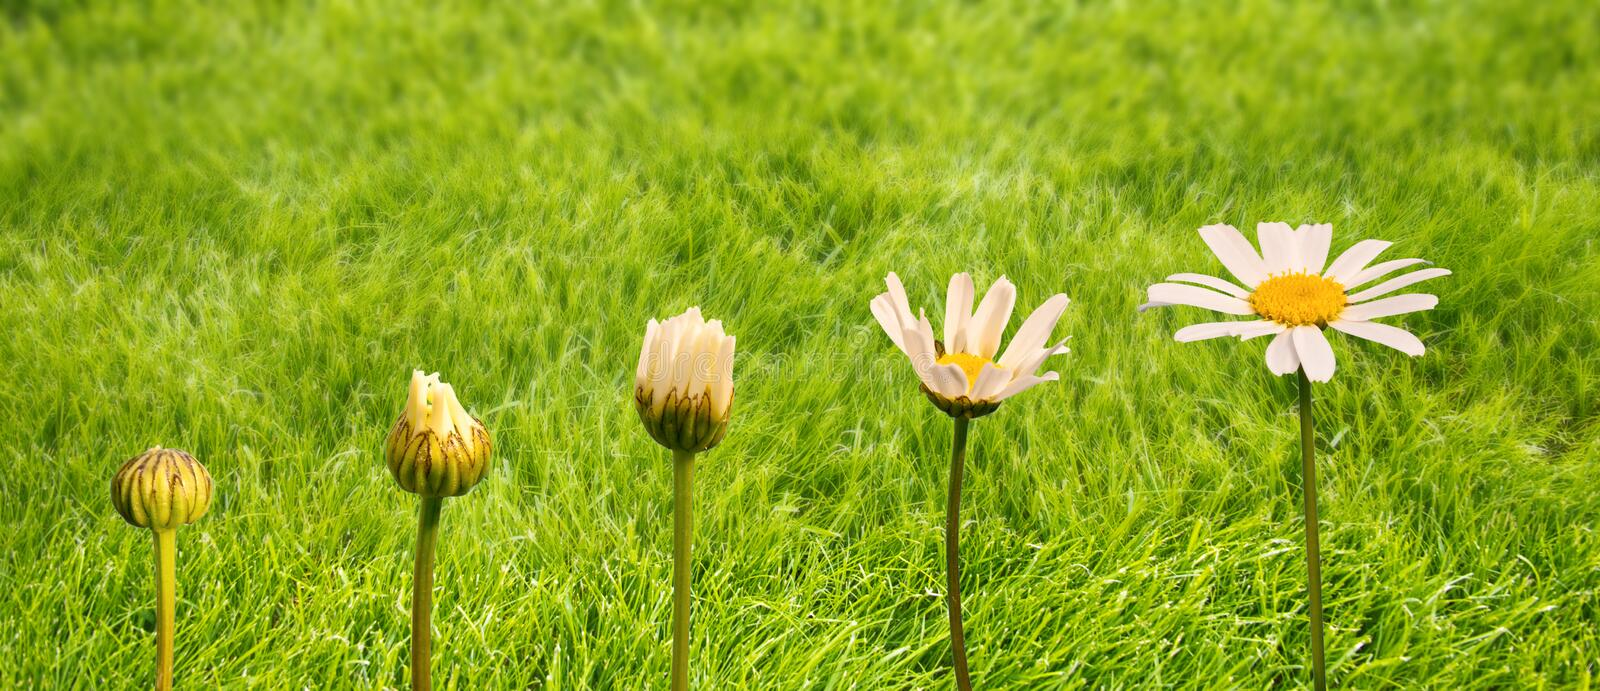 Stages of growth and flowering of a daisy, green grass background, life transformation concept stock images